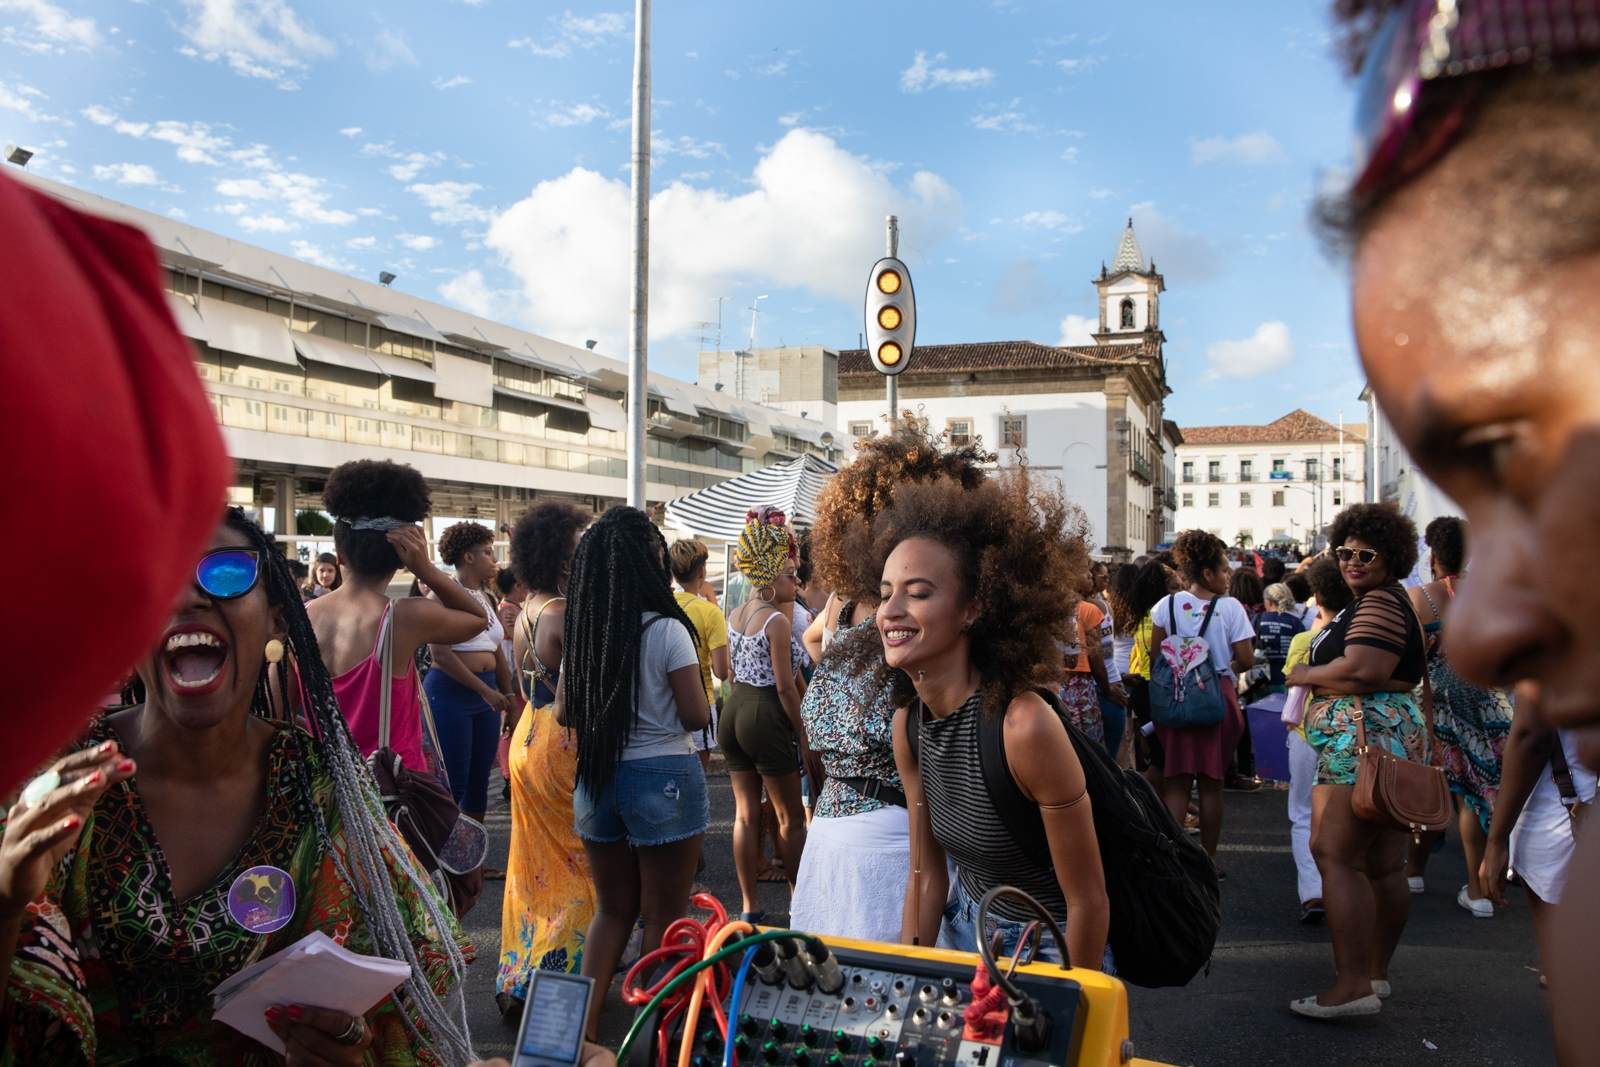 """A woman dances at the march for the International Day of the Black Latin American and Caribeam Women organised each 25th July together with the """"Mês das Pretas"""" (Month for the Black Women) in Salvador, Bahia. The Afro-feminism and feminism in Salvador is growing strongly and mouvements, events, conferences, activities are happening frequently in town. Last year, a turning point for the feminist militants and one of the most significant event for the mouvements in Brazil, was the Angela Davis conference talk at University of Bahia, whose visit gathered hundred of women."""